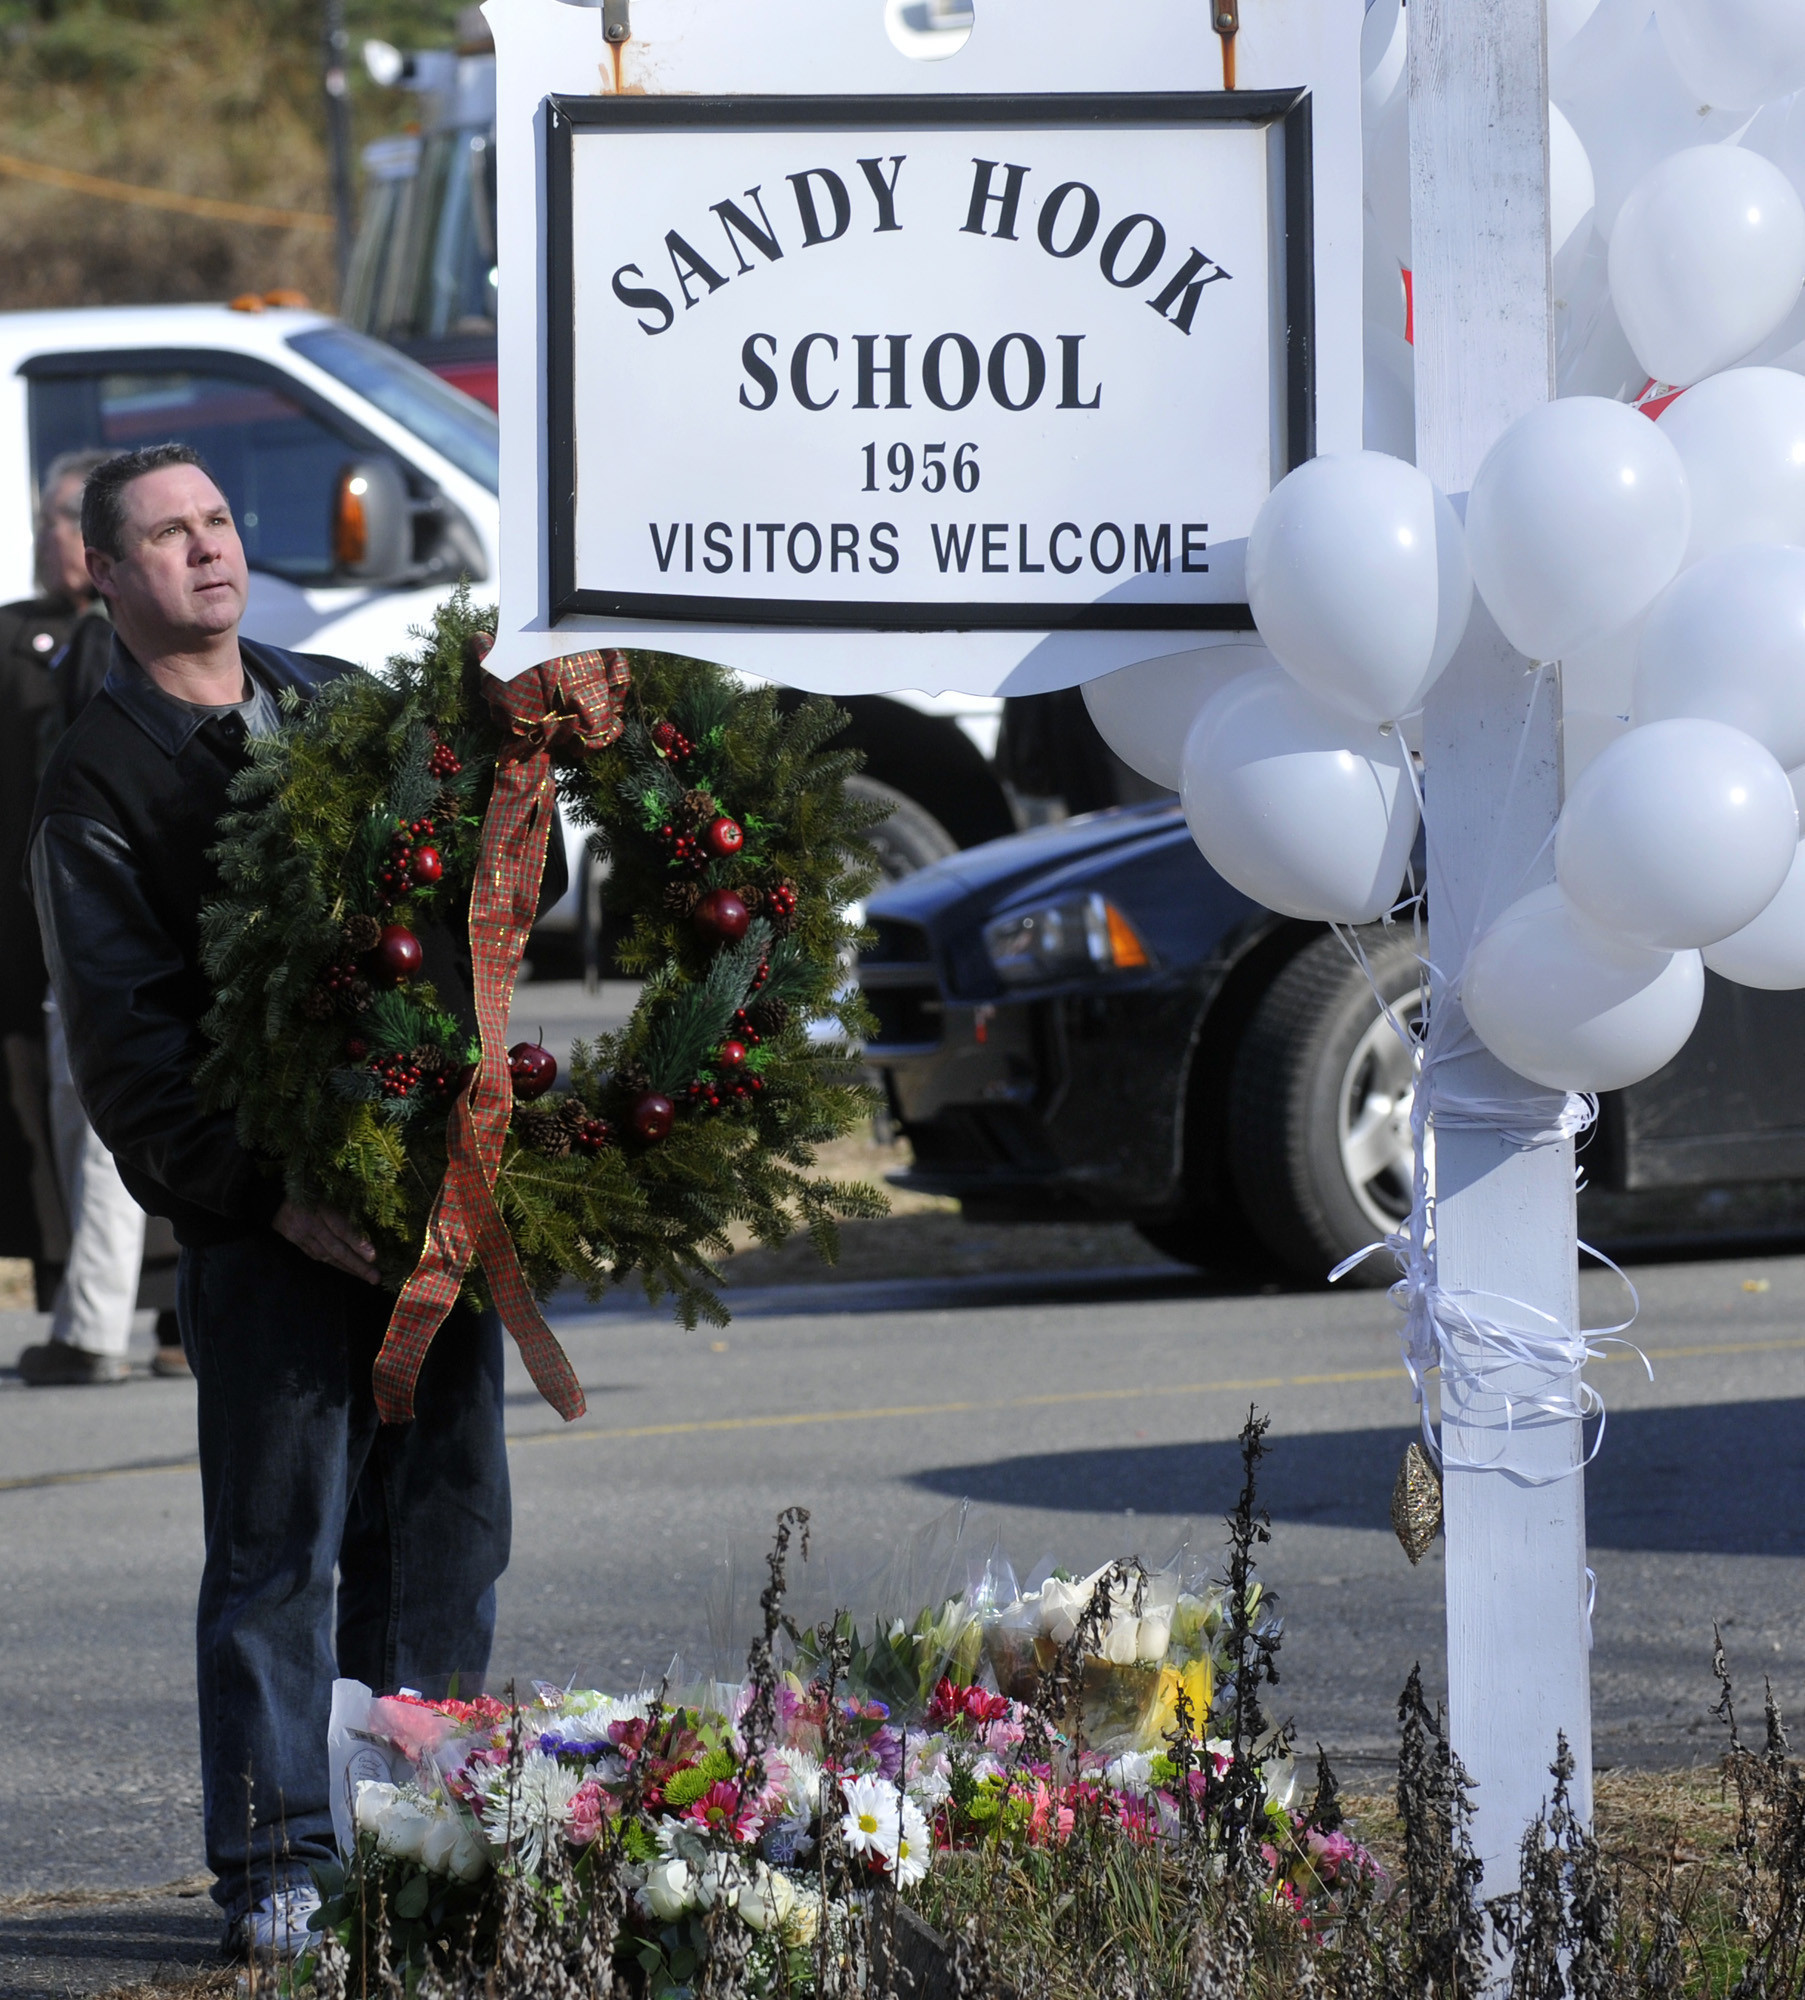 Sandy Hook Elementary School Articles, Photos, And Videos